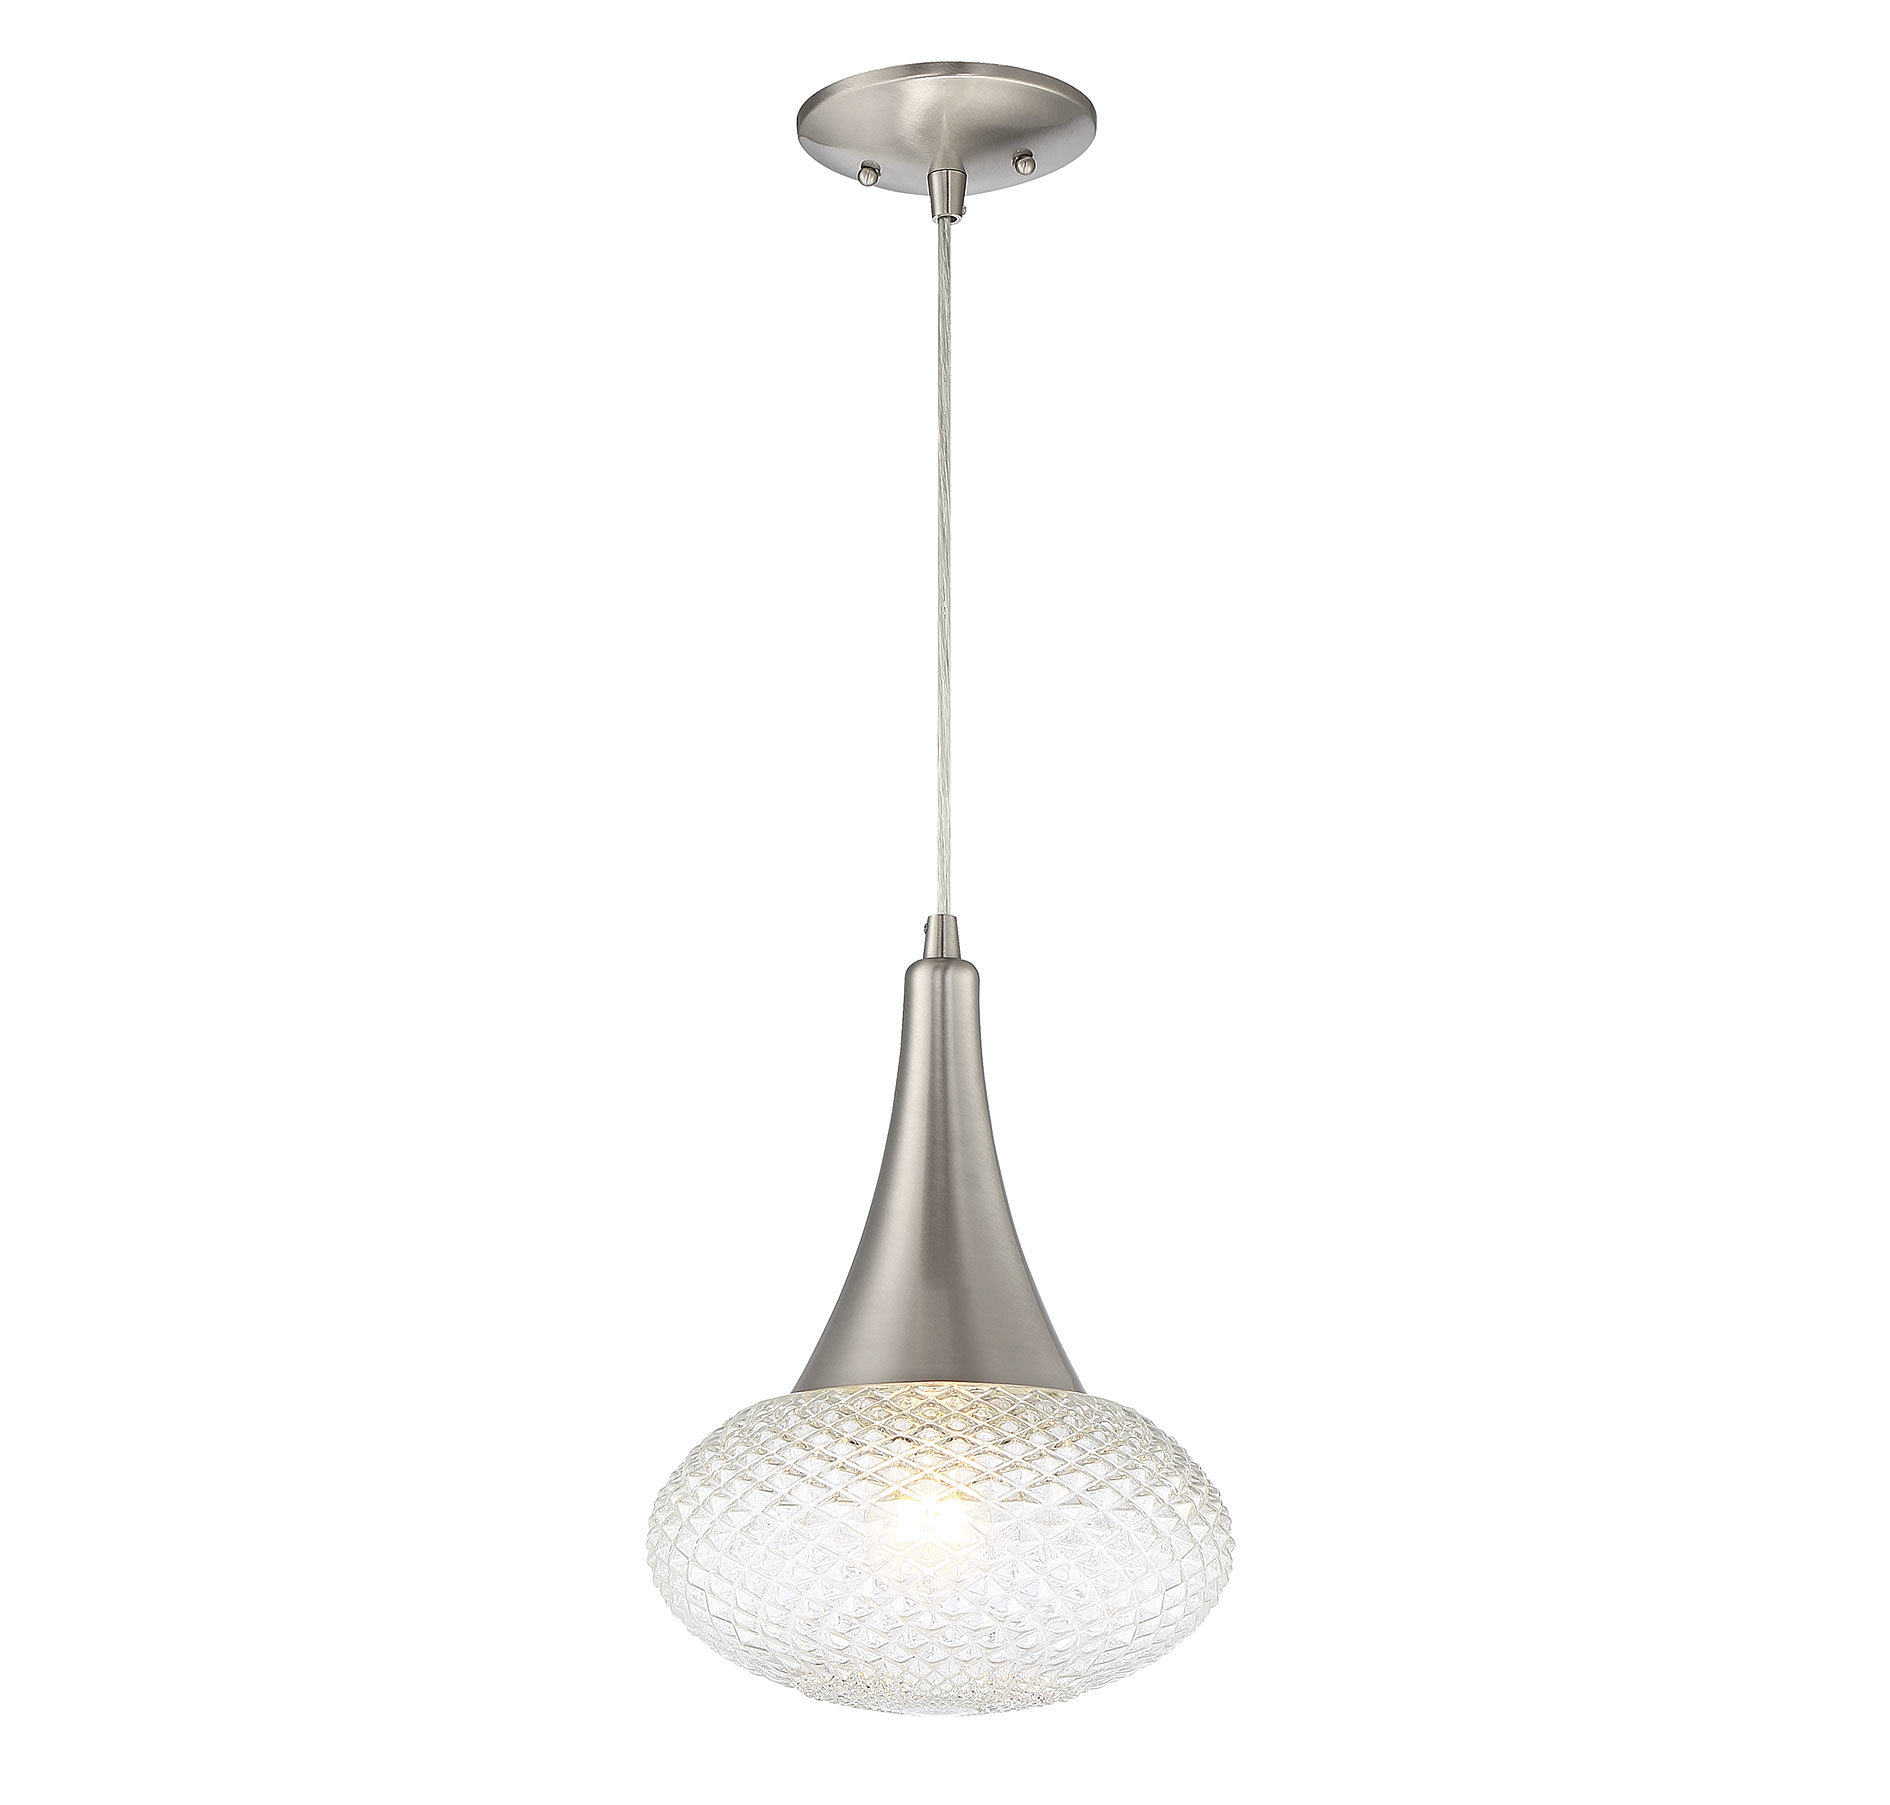 Carly 1 Light Single Teardrop Pendant Throughout Abordale 1 Light Single Dome Pendants (View 14 of 30)